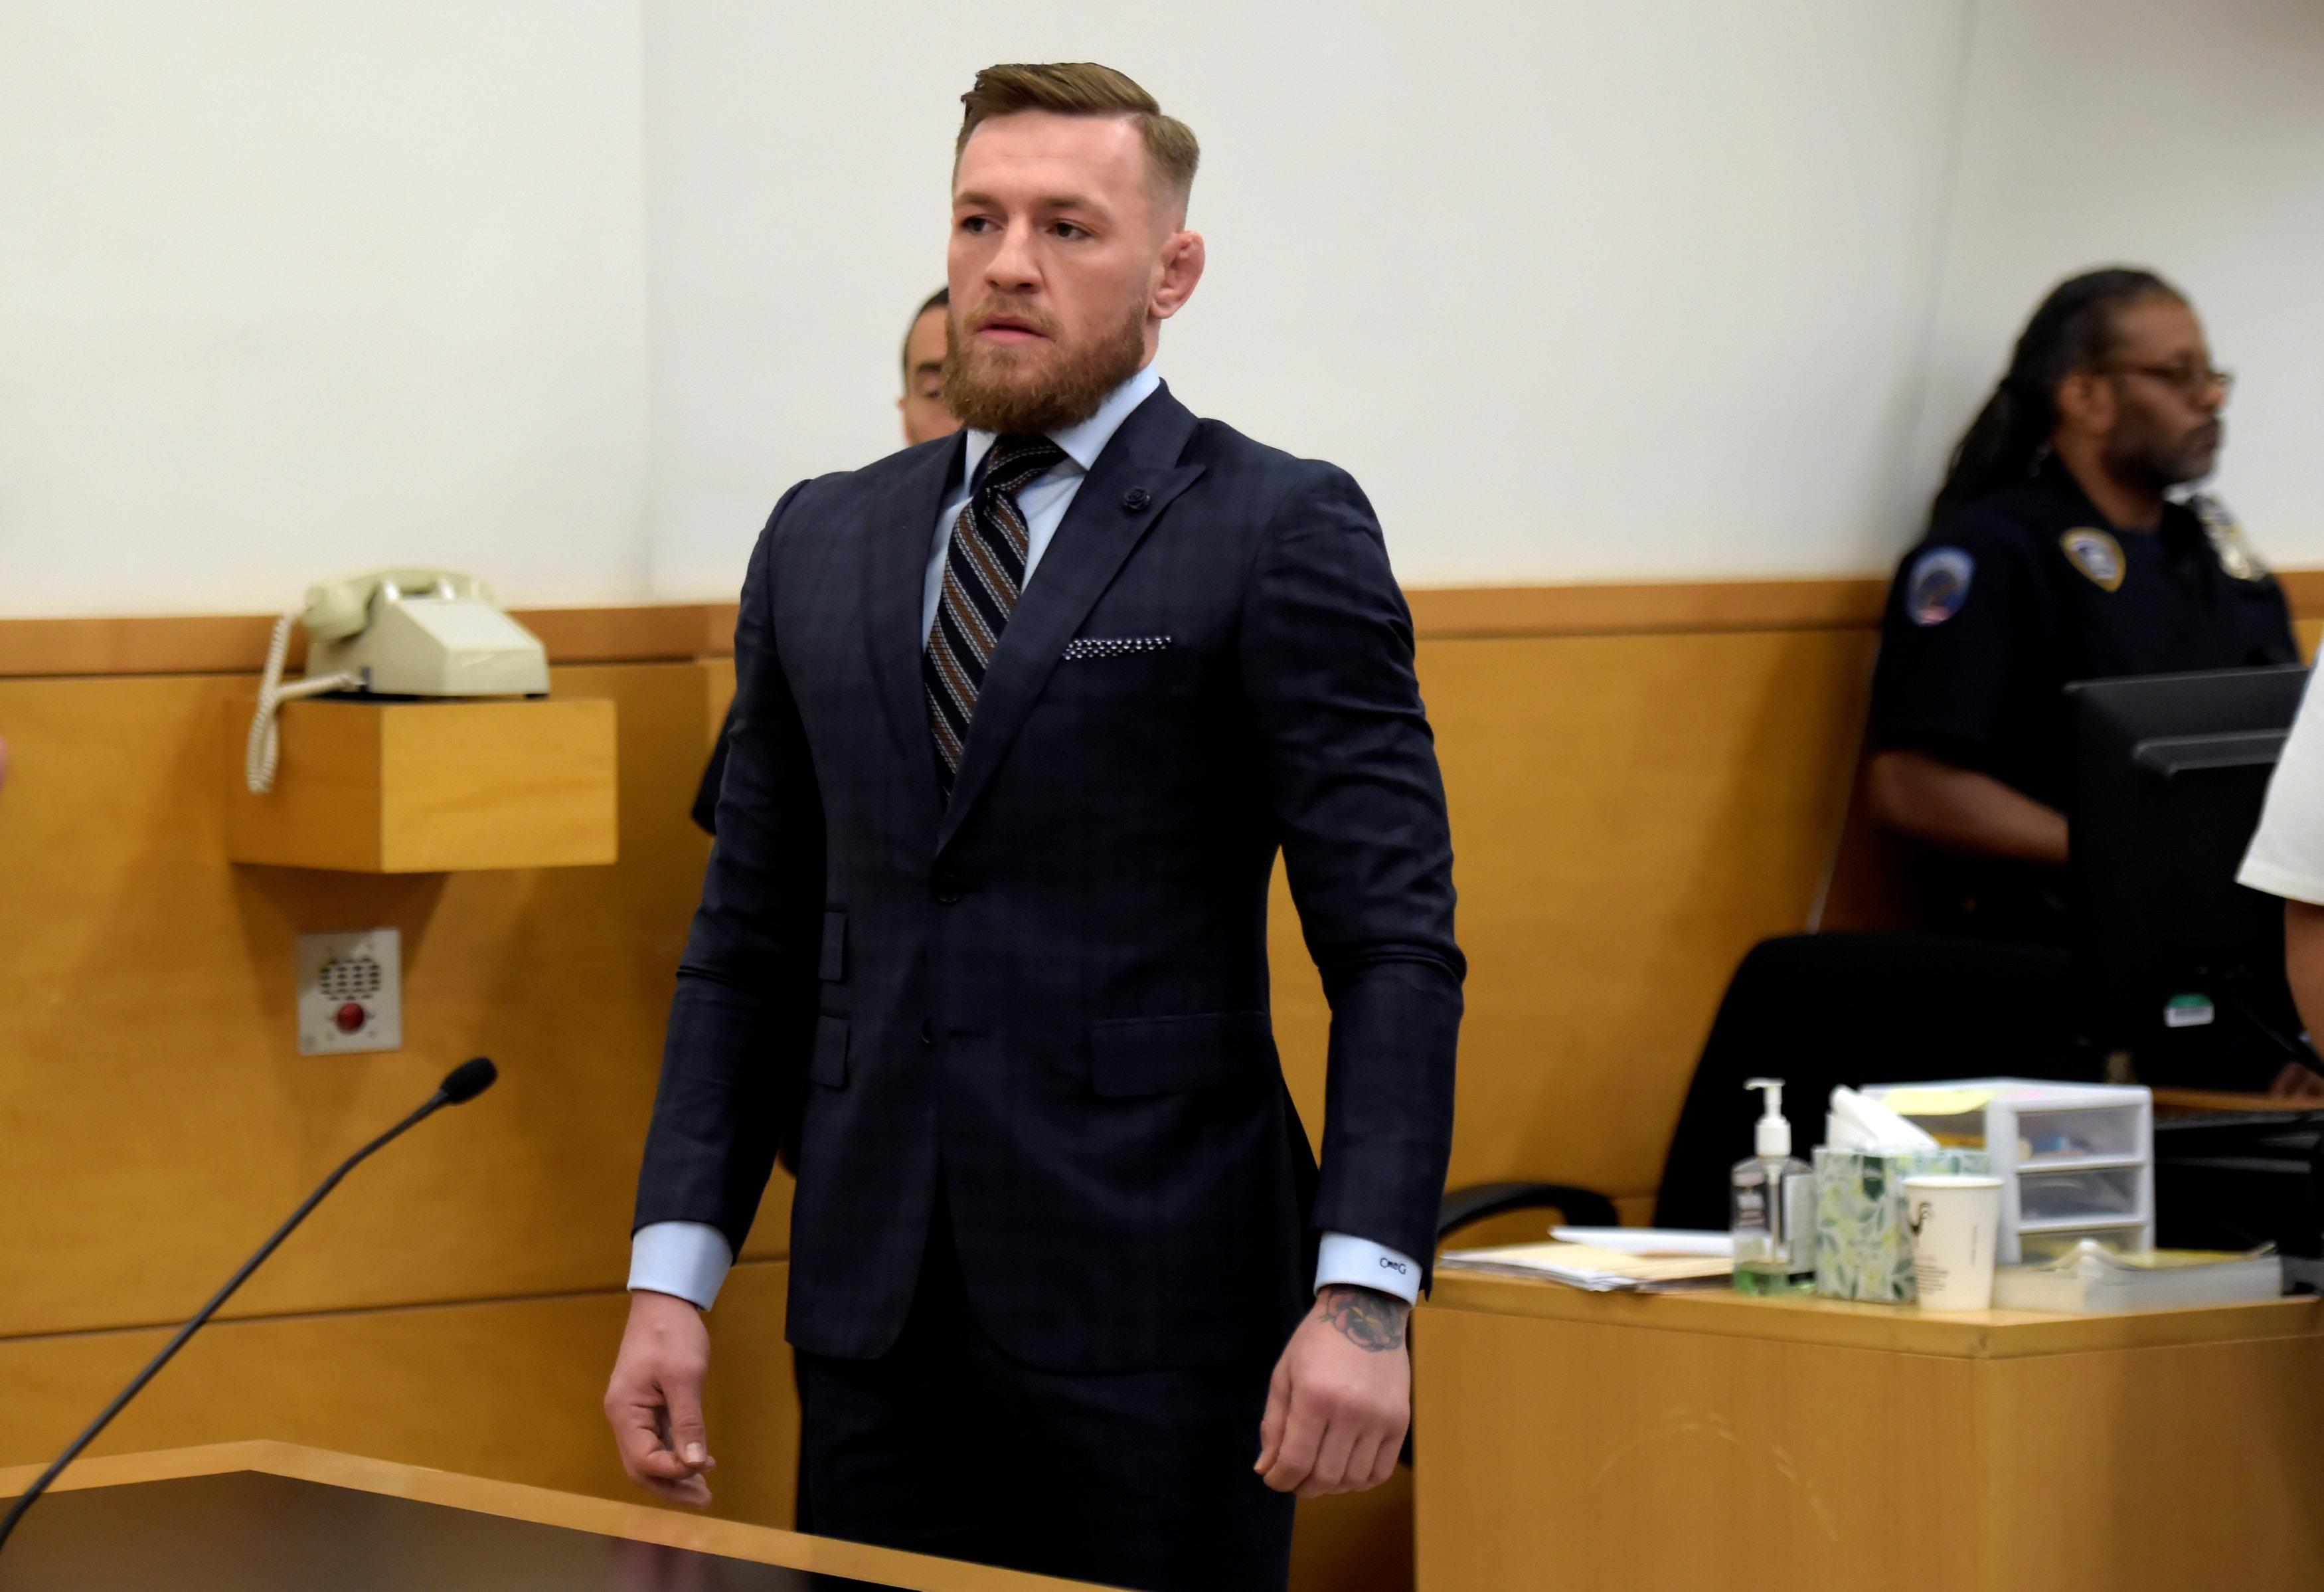 McGregor appears in Brooklyn Supreme Court during a hearing over his assault charges